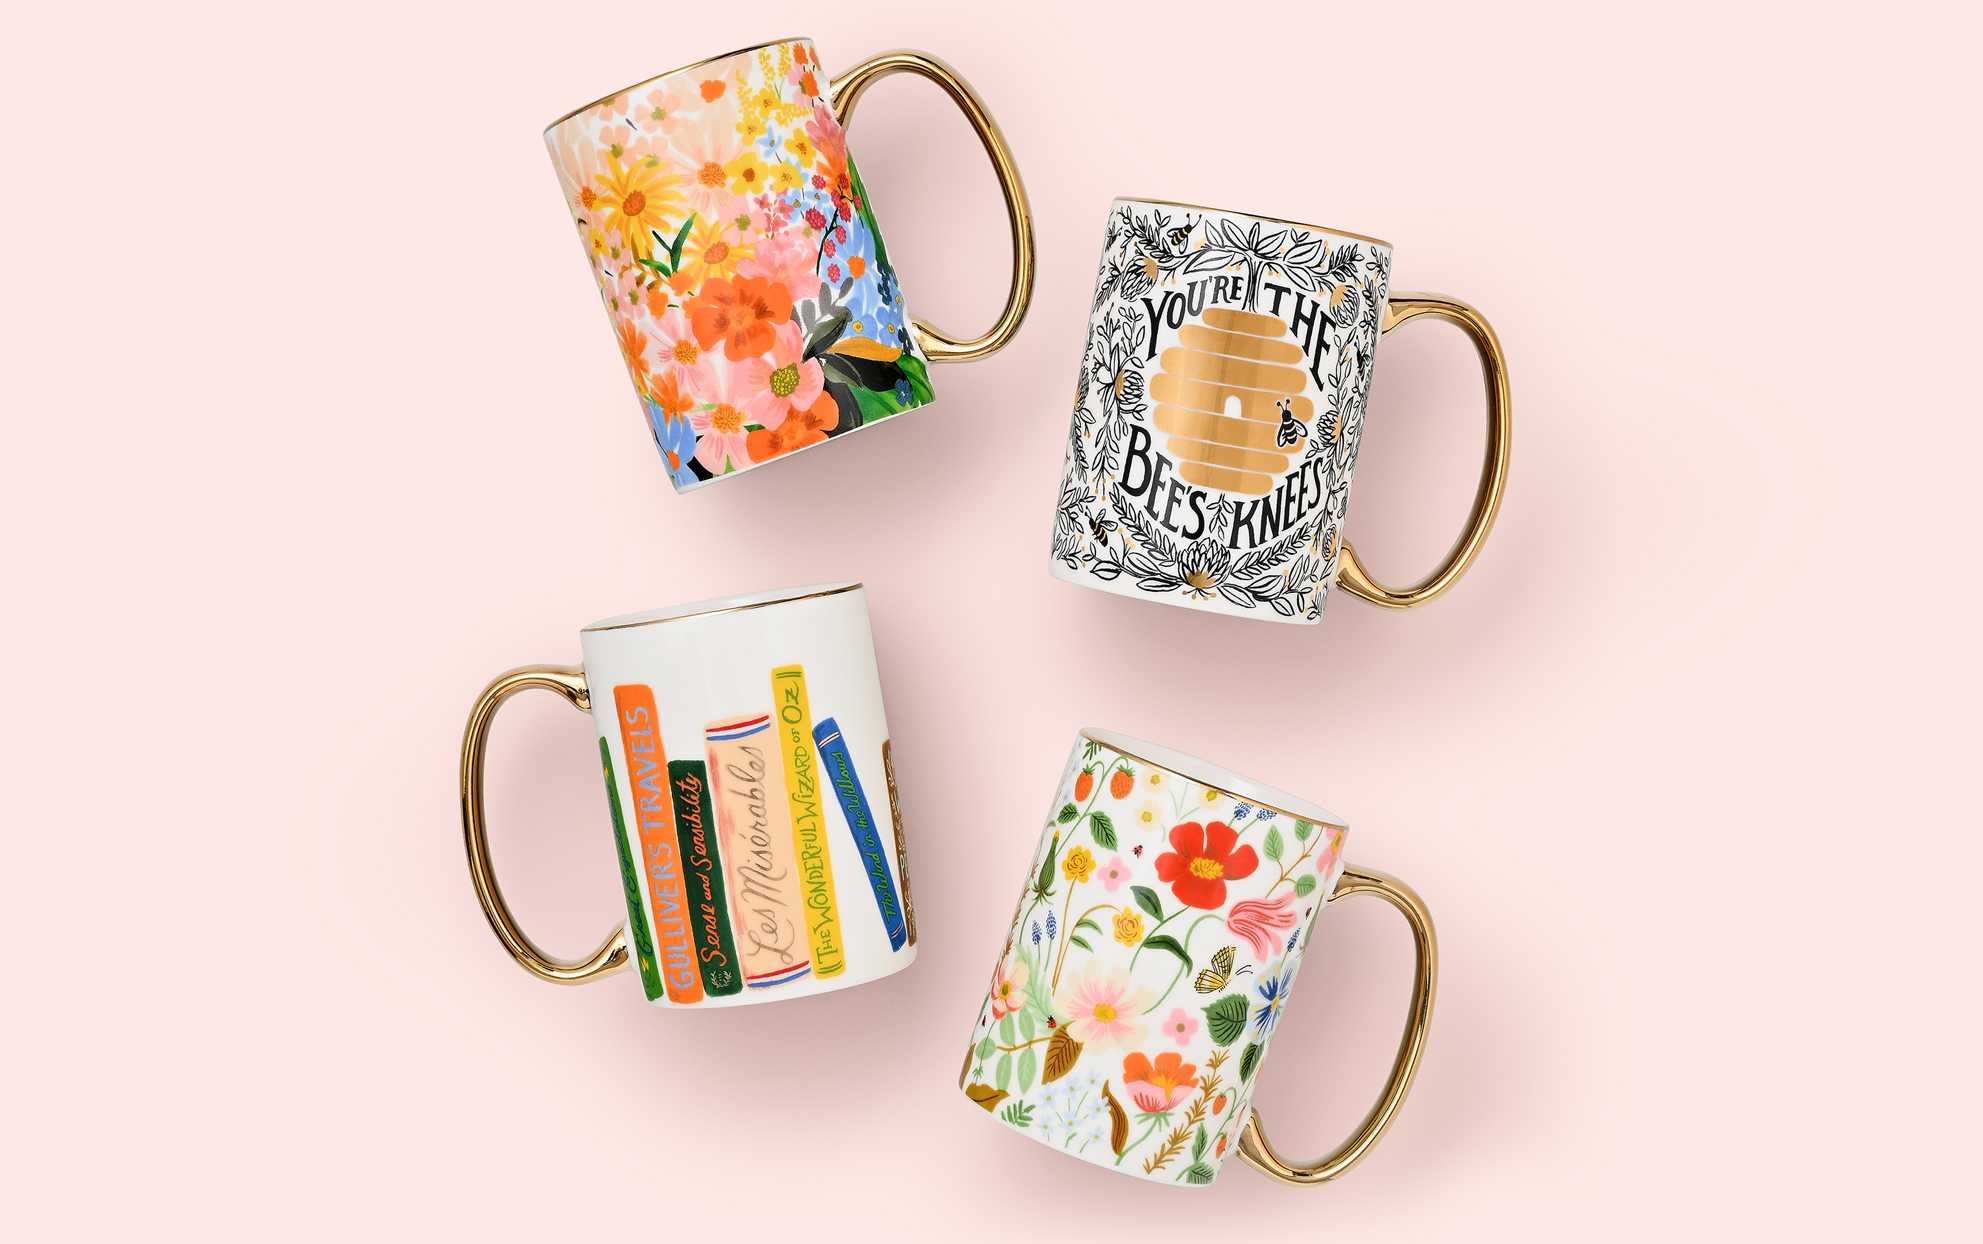 Four Rifle Paper Co mugs on a pink background